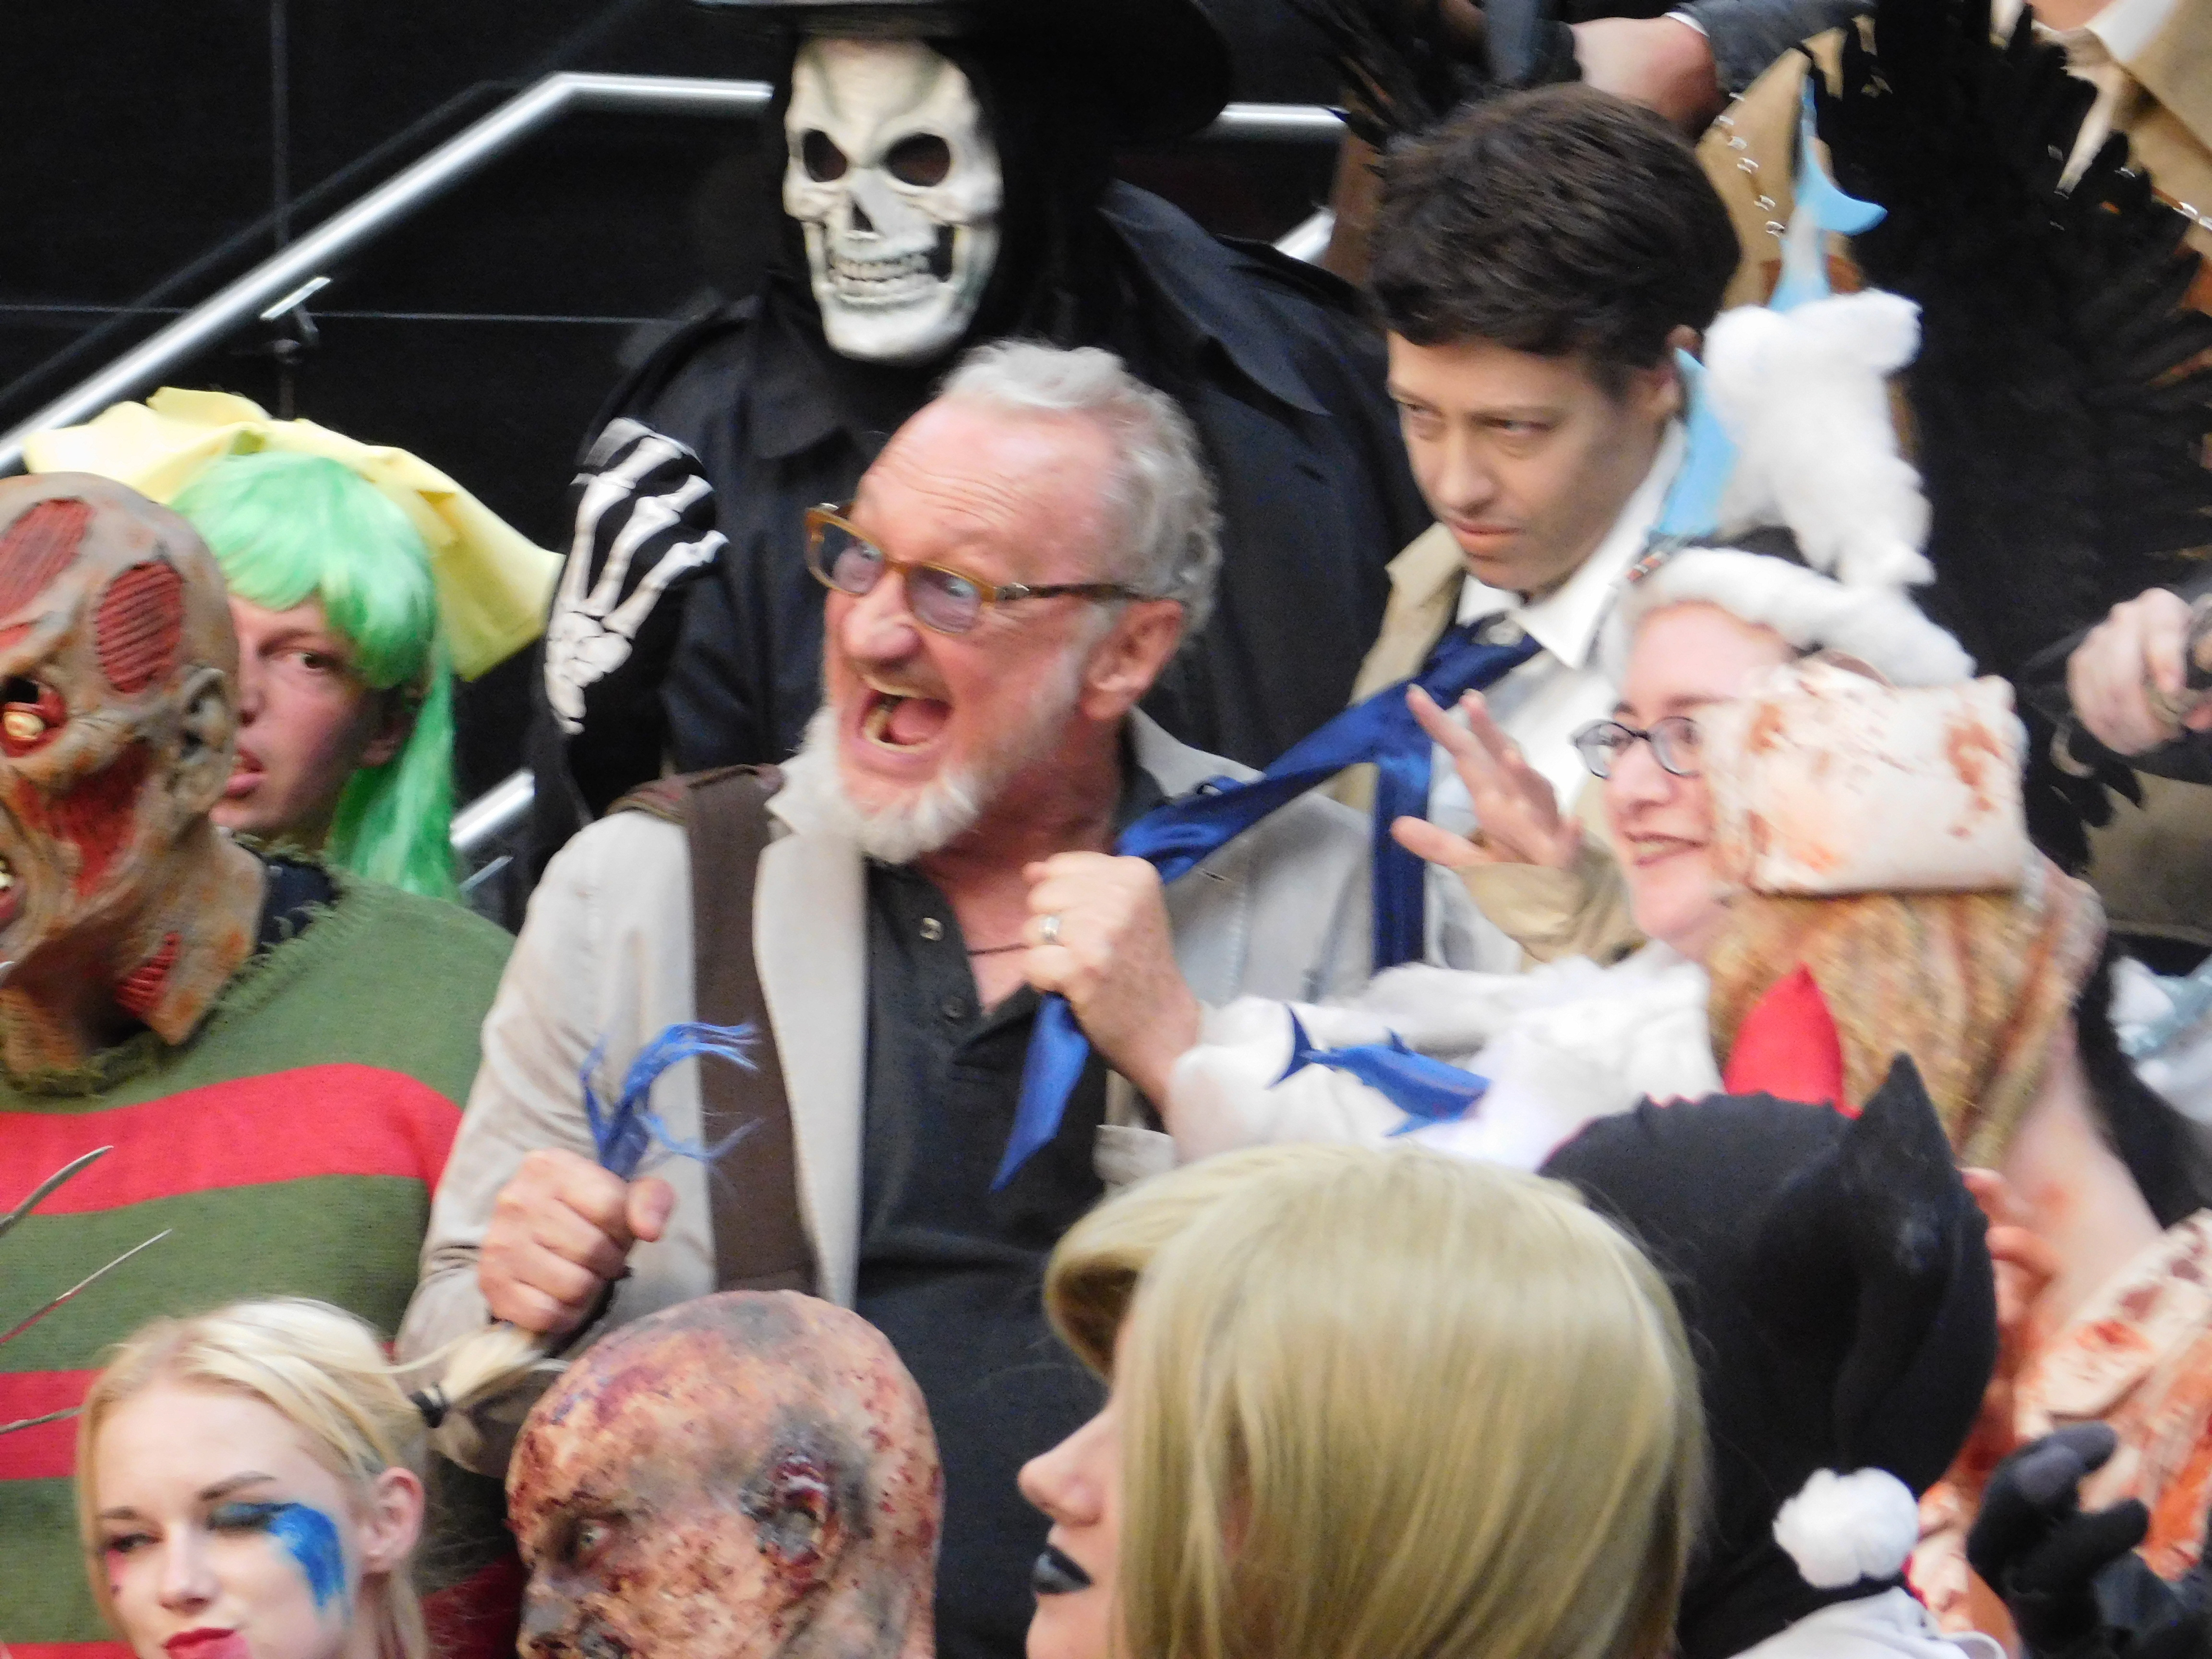 SLCCd2.059 - Robert Englund joining in on the fun.